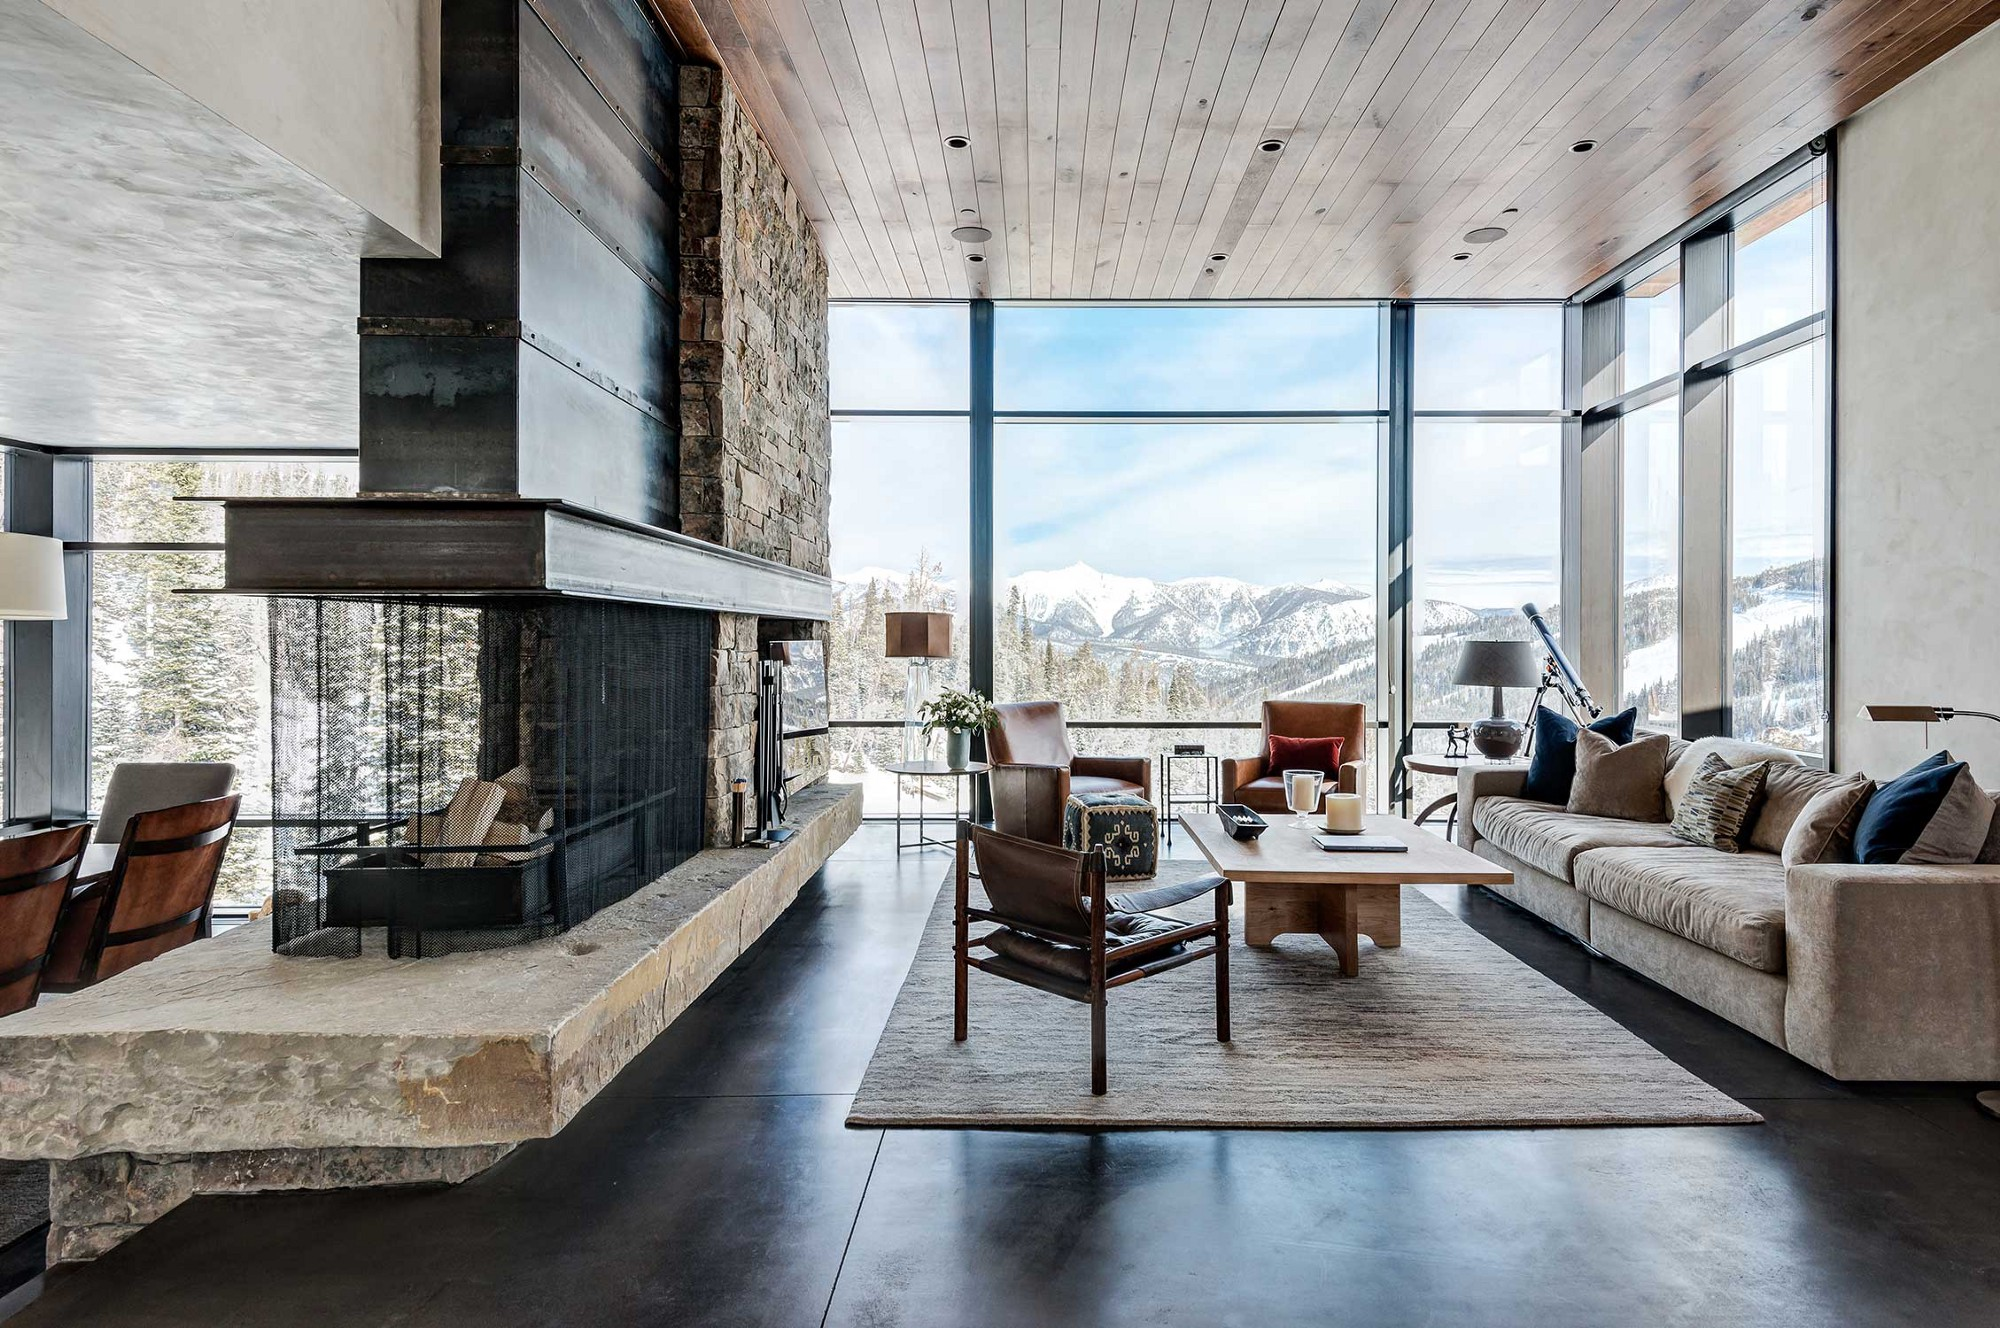 Residential Design Inspiration: Modern Central Fireplaces